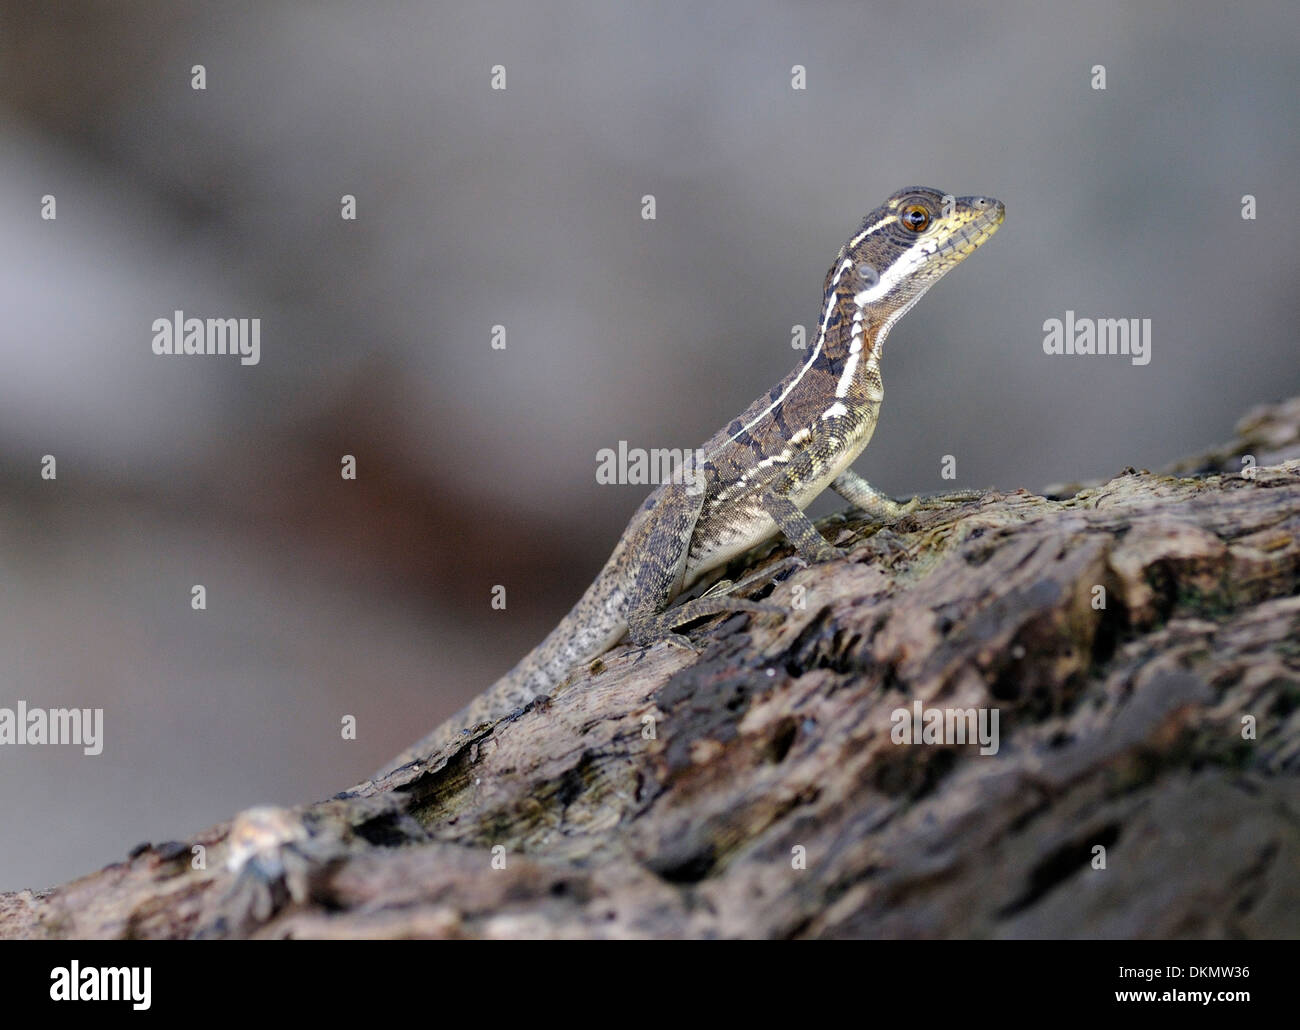 A lizard on driftwood on the beach of Isla del Cano, Drake Bay, Corcovado National Park, Golfito, Costa Rica. - Stock Image